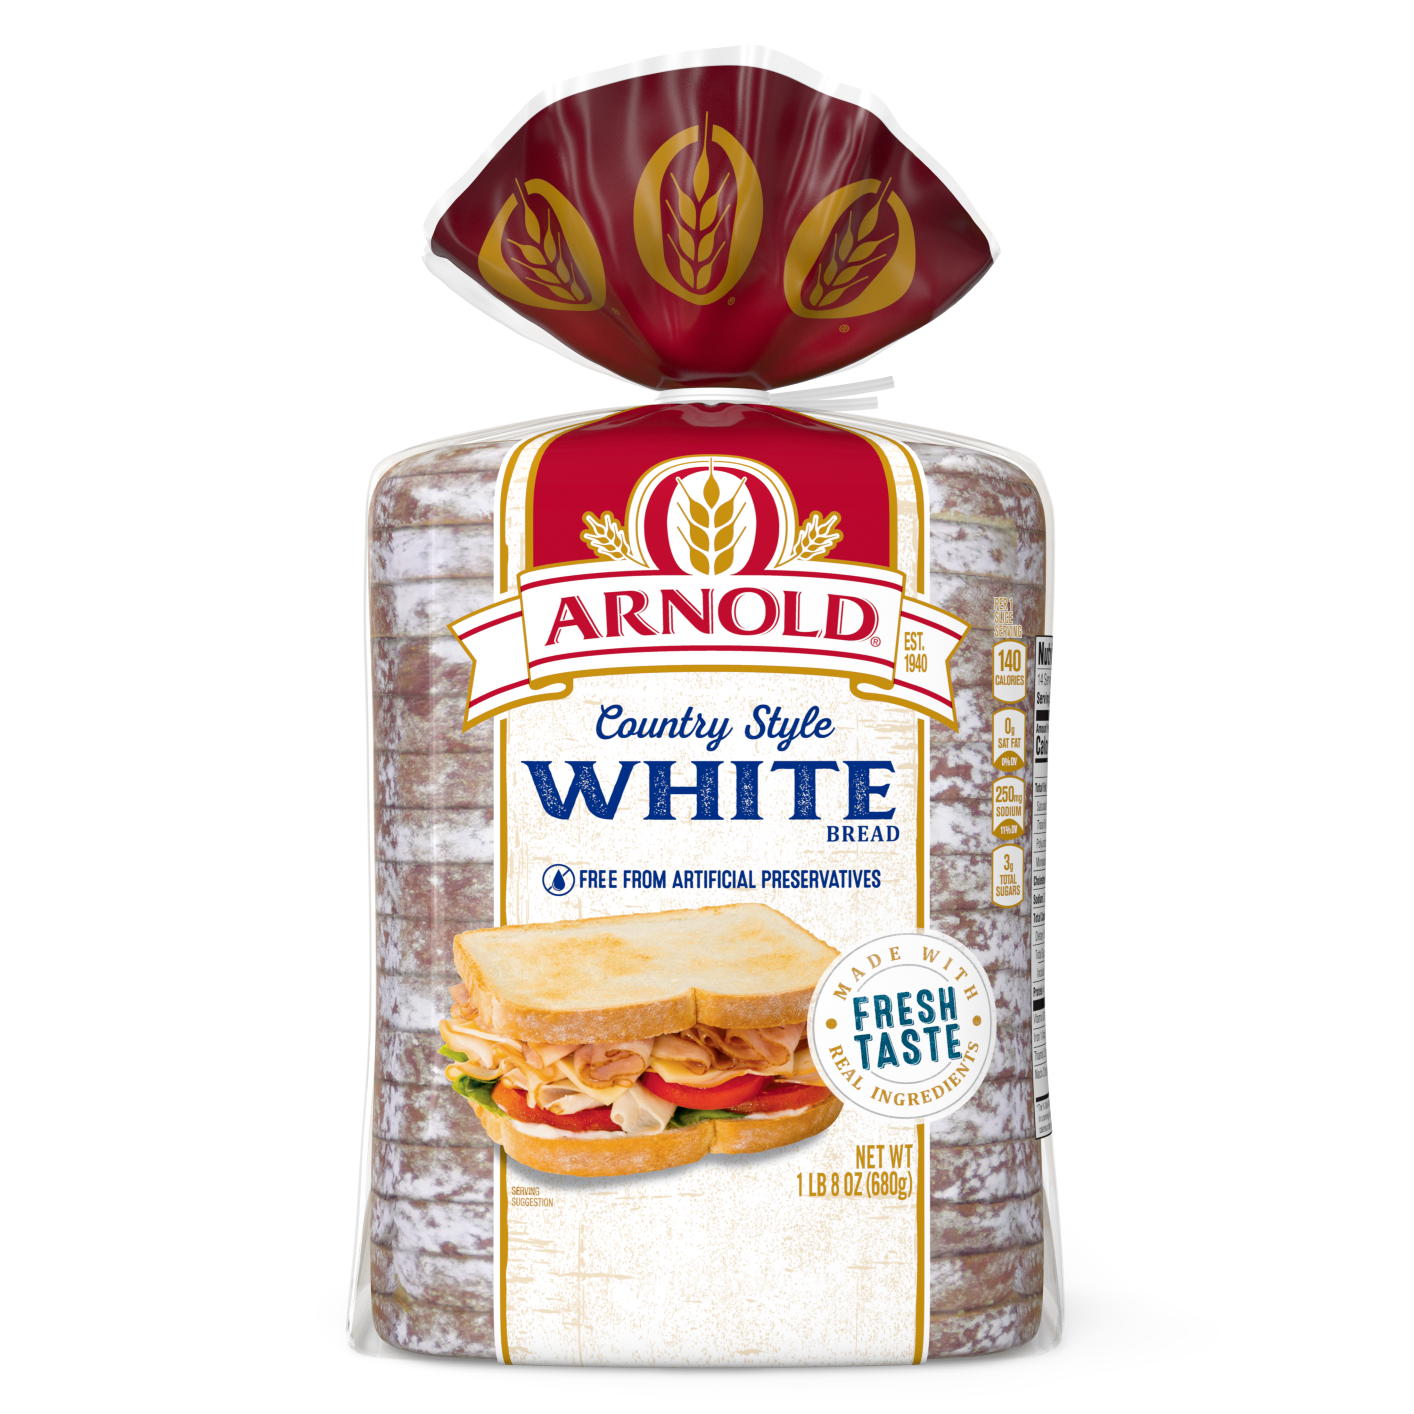 Arnold Country Style White Bread 24oz Packaging